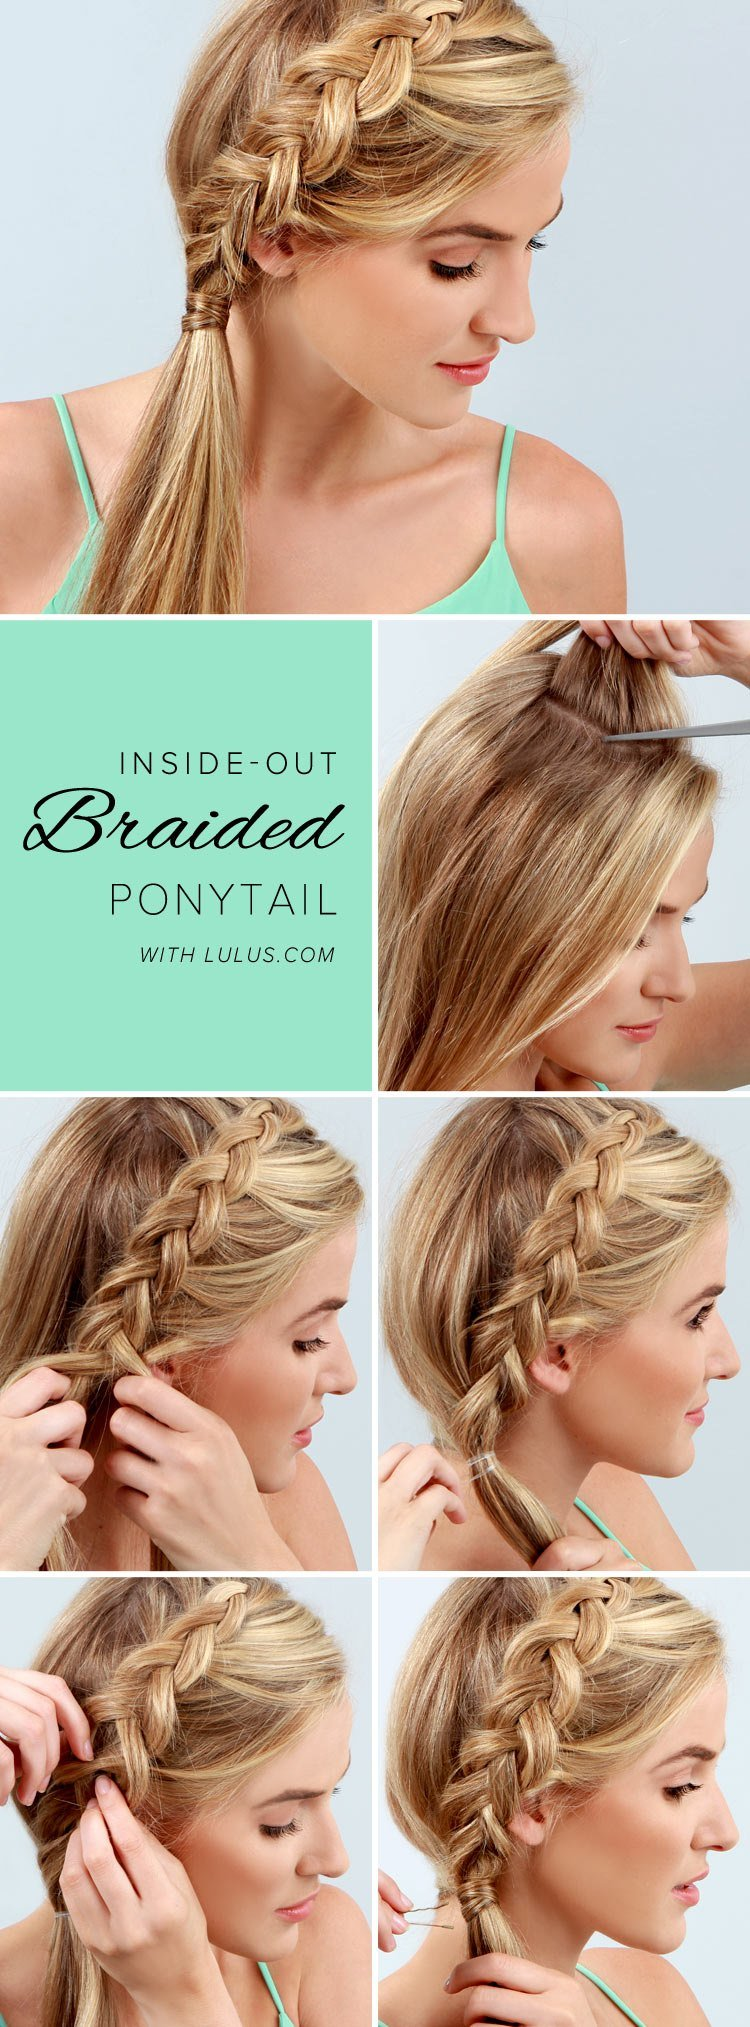 The Best 15 Stylish Step By Step Hairstyle Tutorials You Must See Pictures